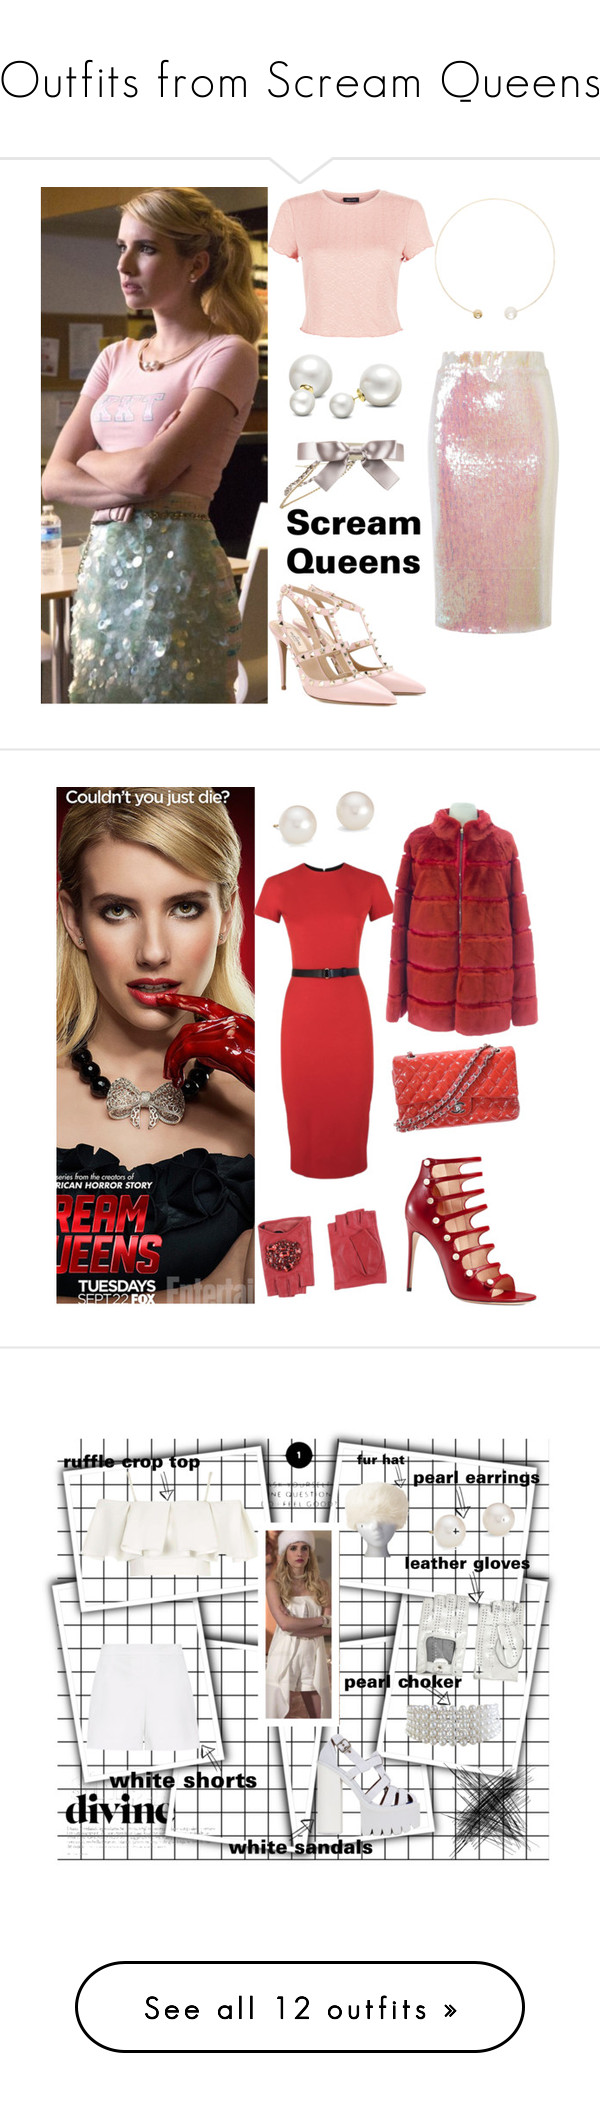 """""""Outfits from Scream Queens"""" by ramonaalexandrova ❤ liked on Polyvore featuring Essentiel, New Look, Chanel, Allurez, Sophie Bille Brahe, Valentino, emmaroberts, queens, scream and ScreamQueens"""